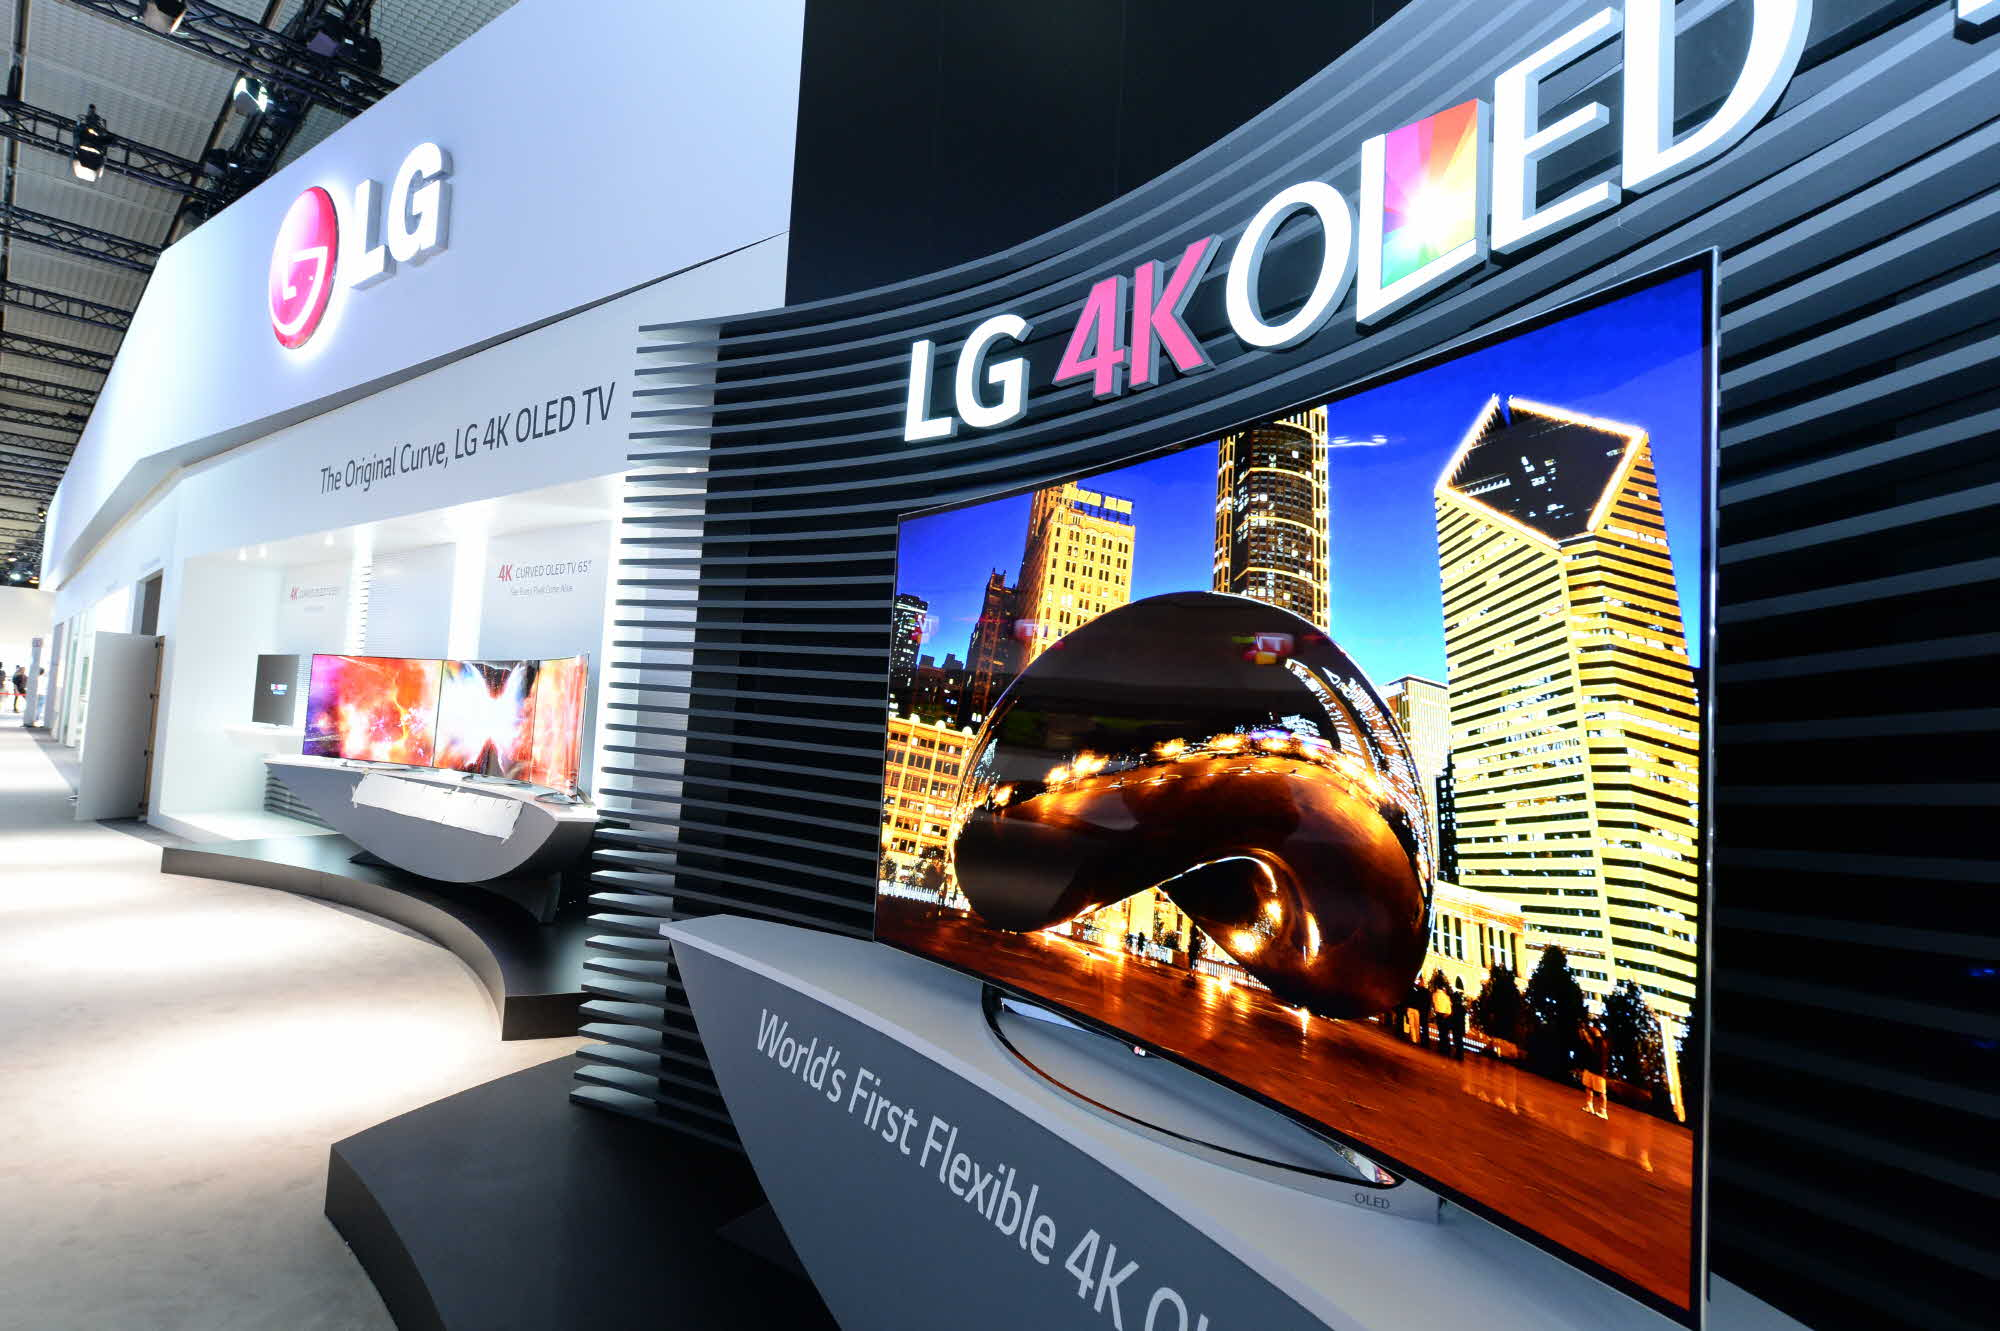 LG's 77-inch flexible 4K OLED TV allows viewers to adjust the degree of curvature depending on the size of the audience or type of content being viewed. (image: LG Elecronics)